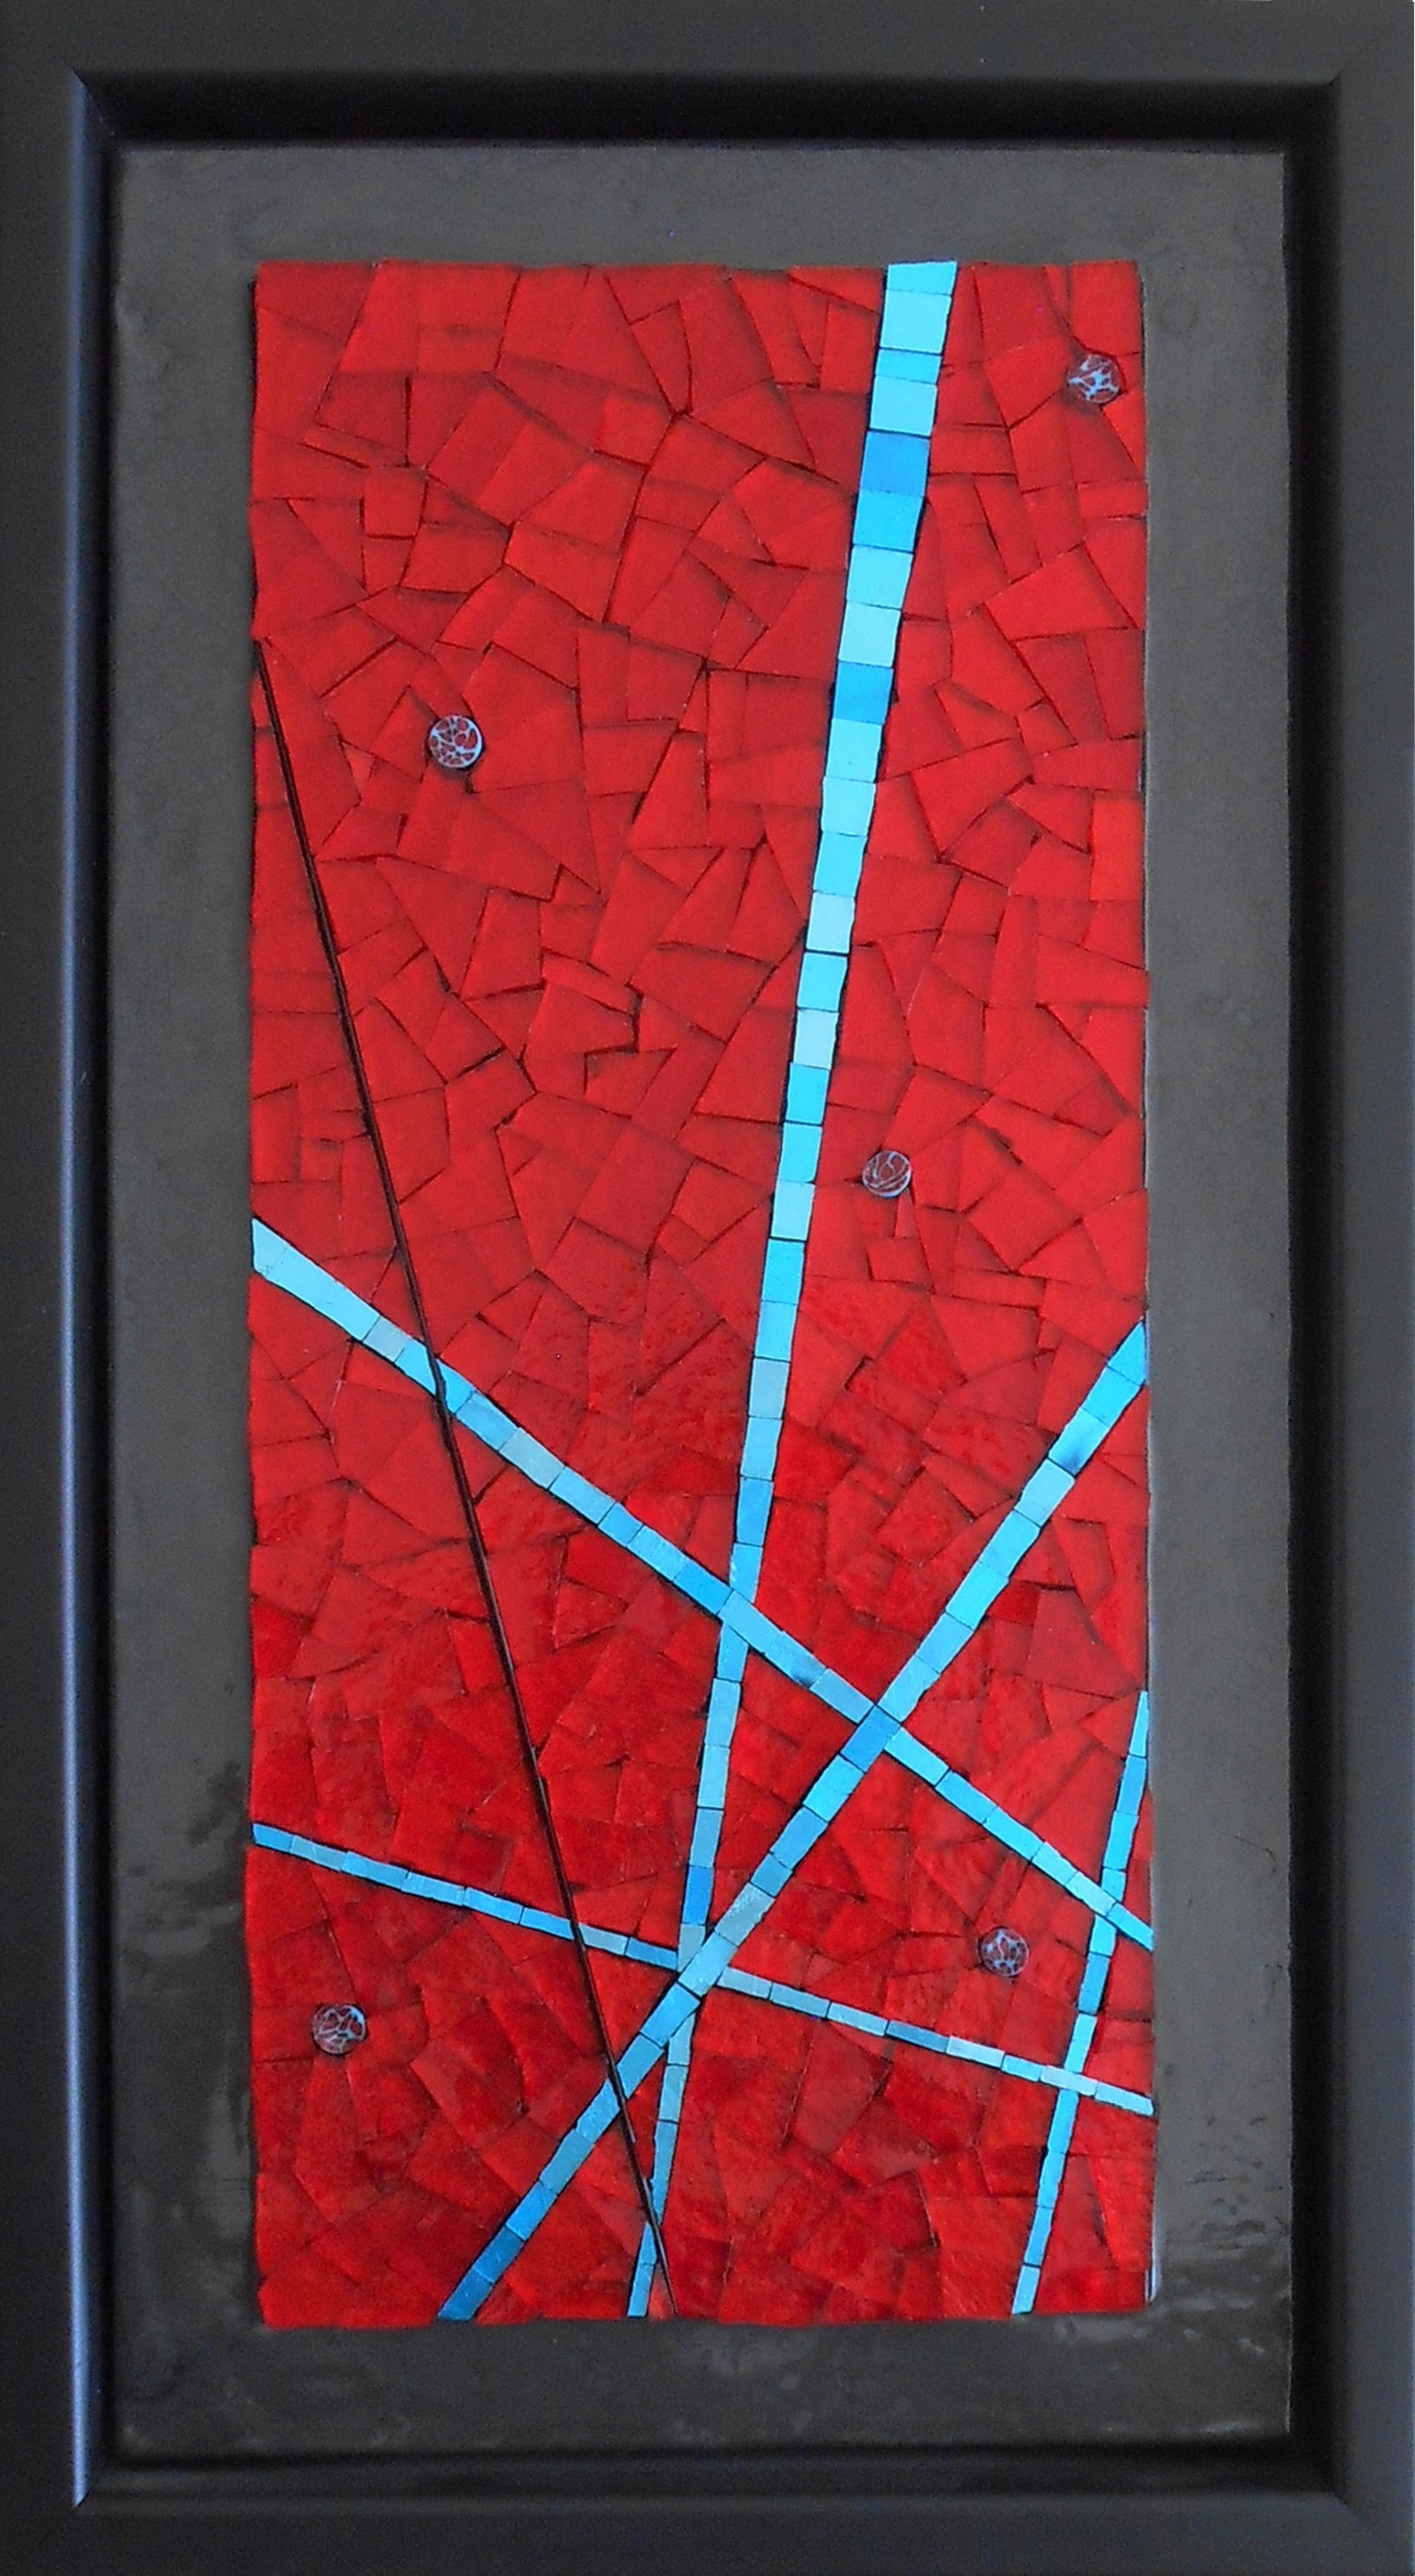 Dispersion M310 (1) Red Turquoise AM